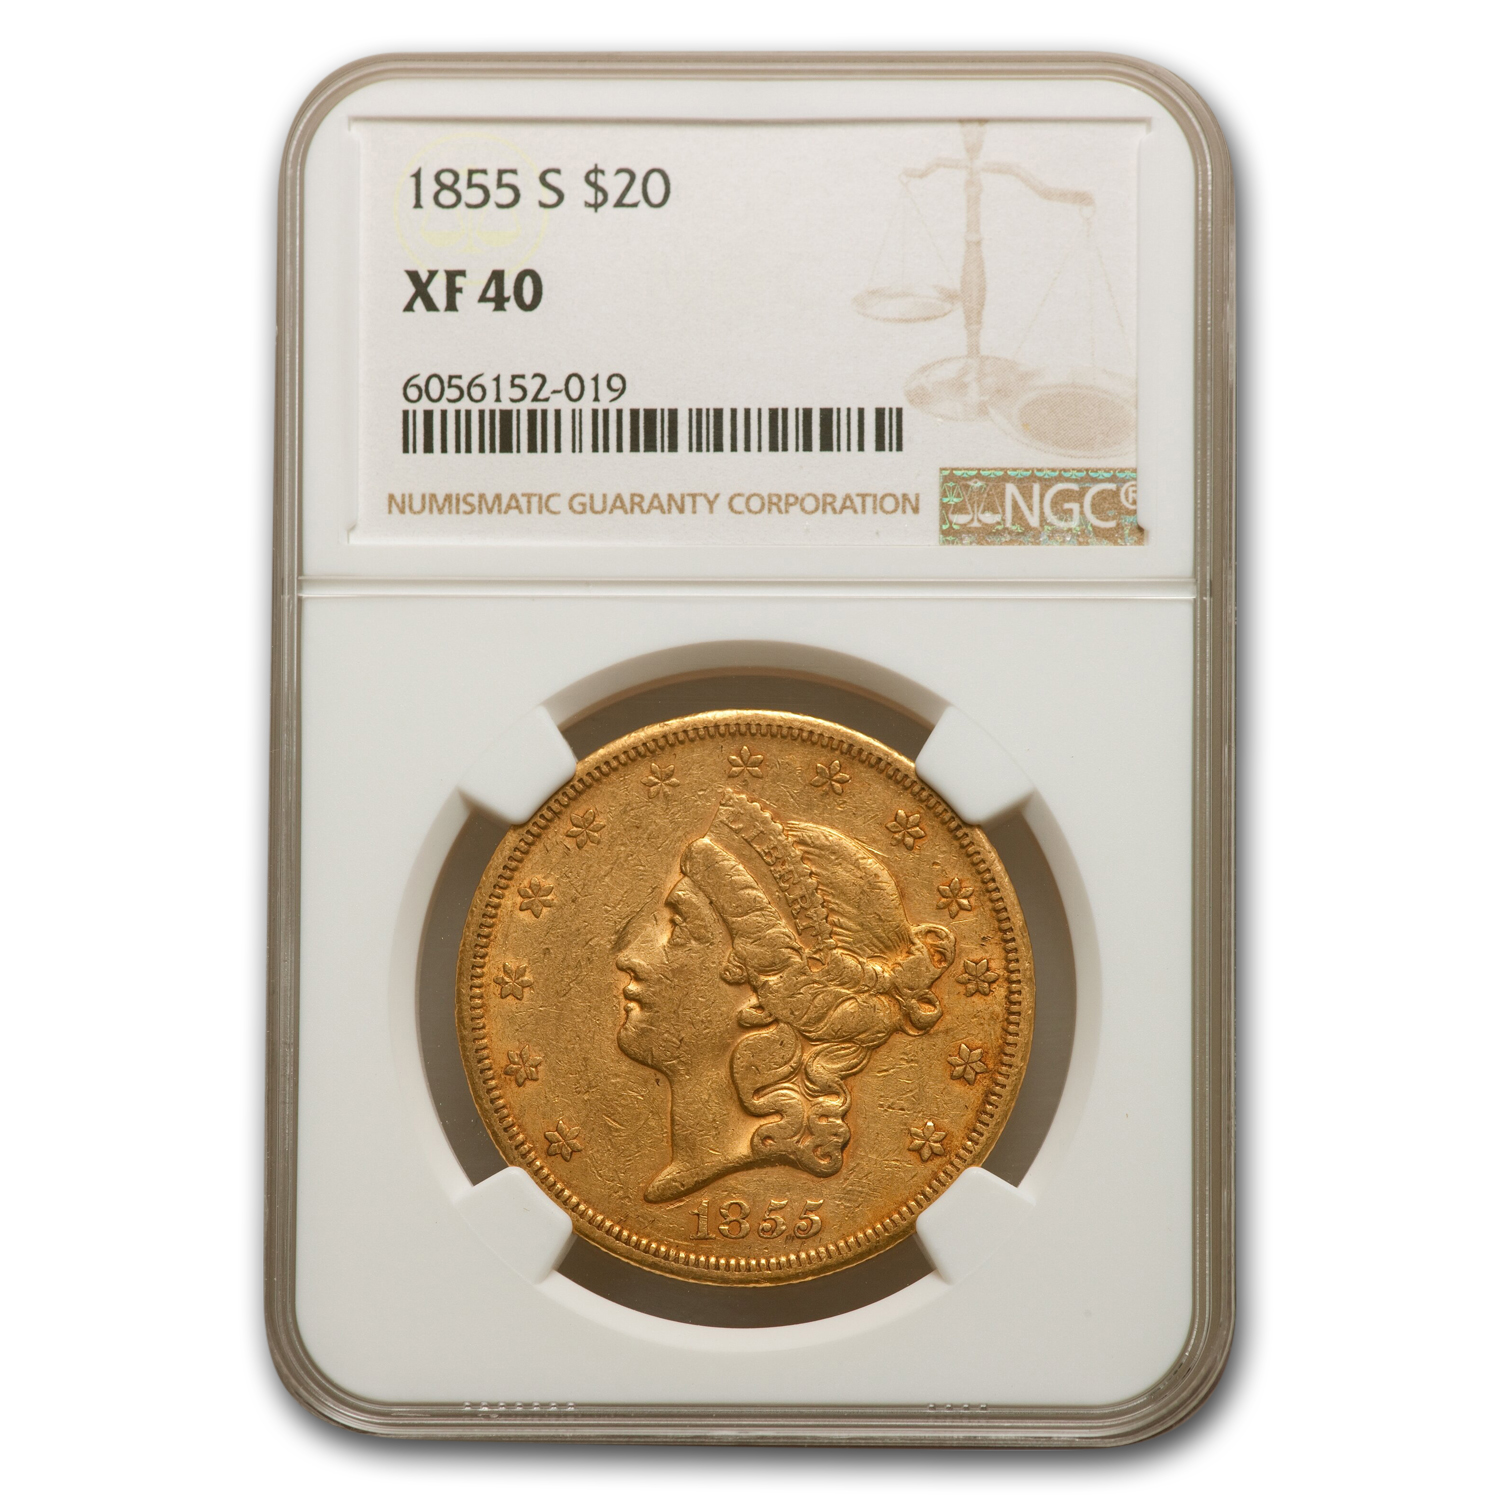 1855-S $20 Gold Liberty Double Eagle - XF-40 NGC